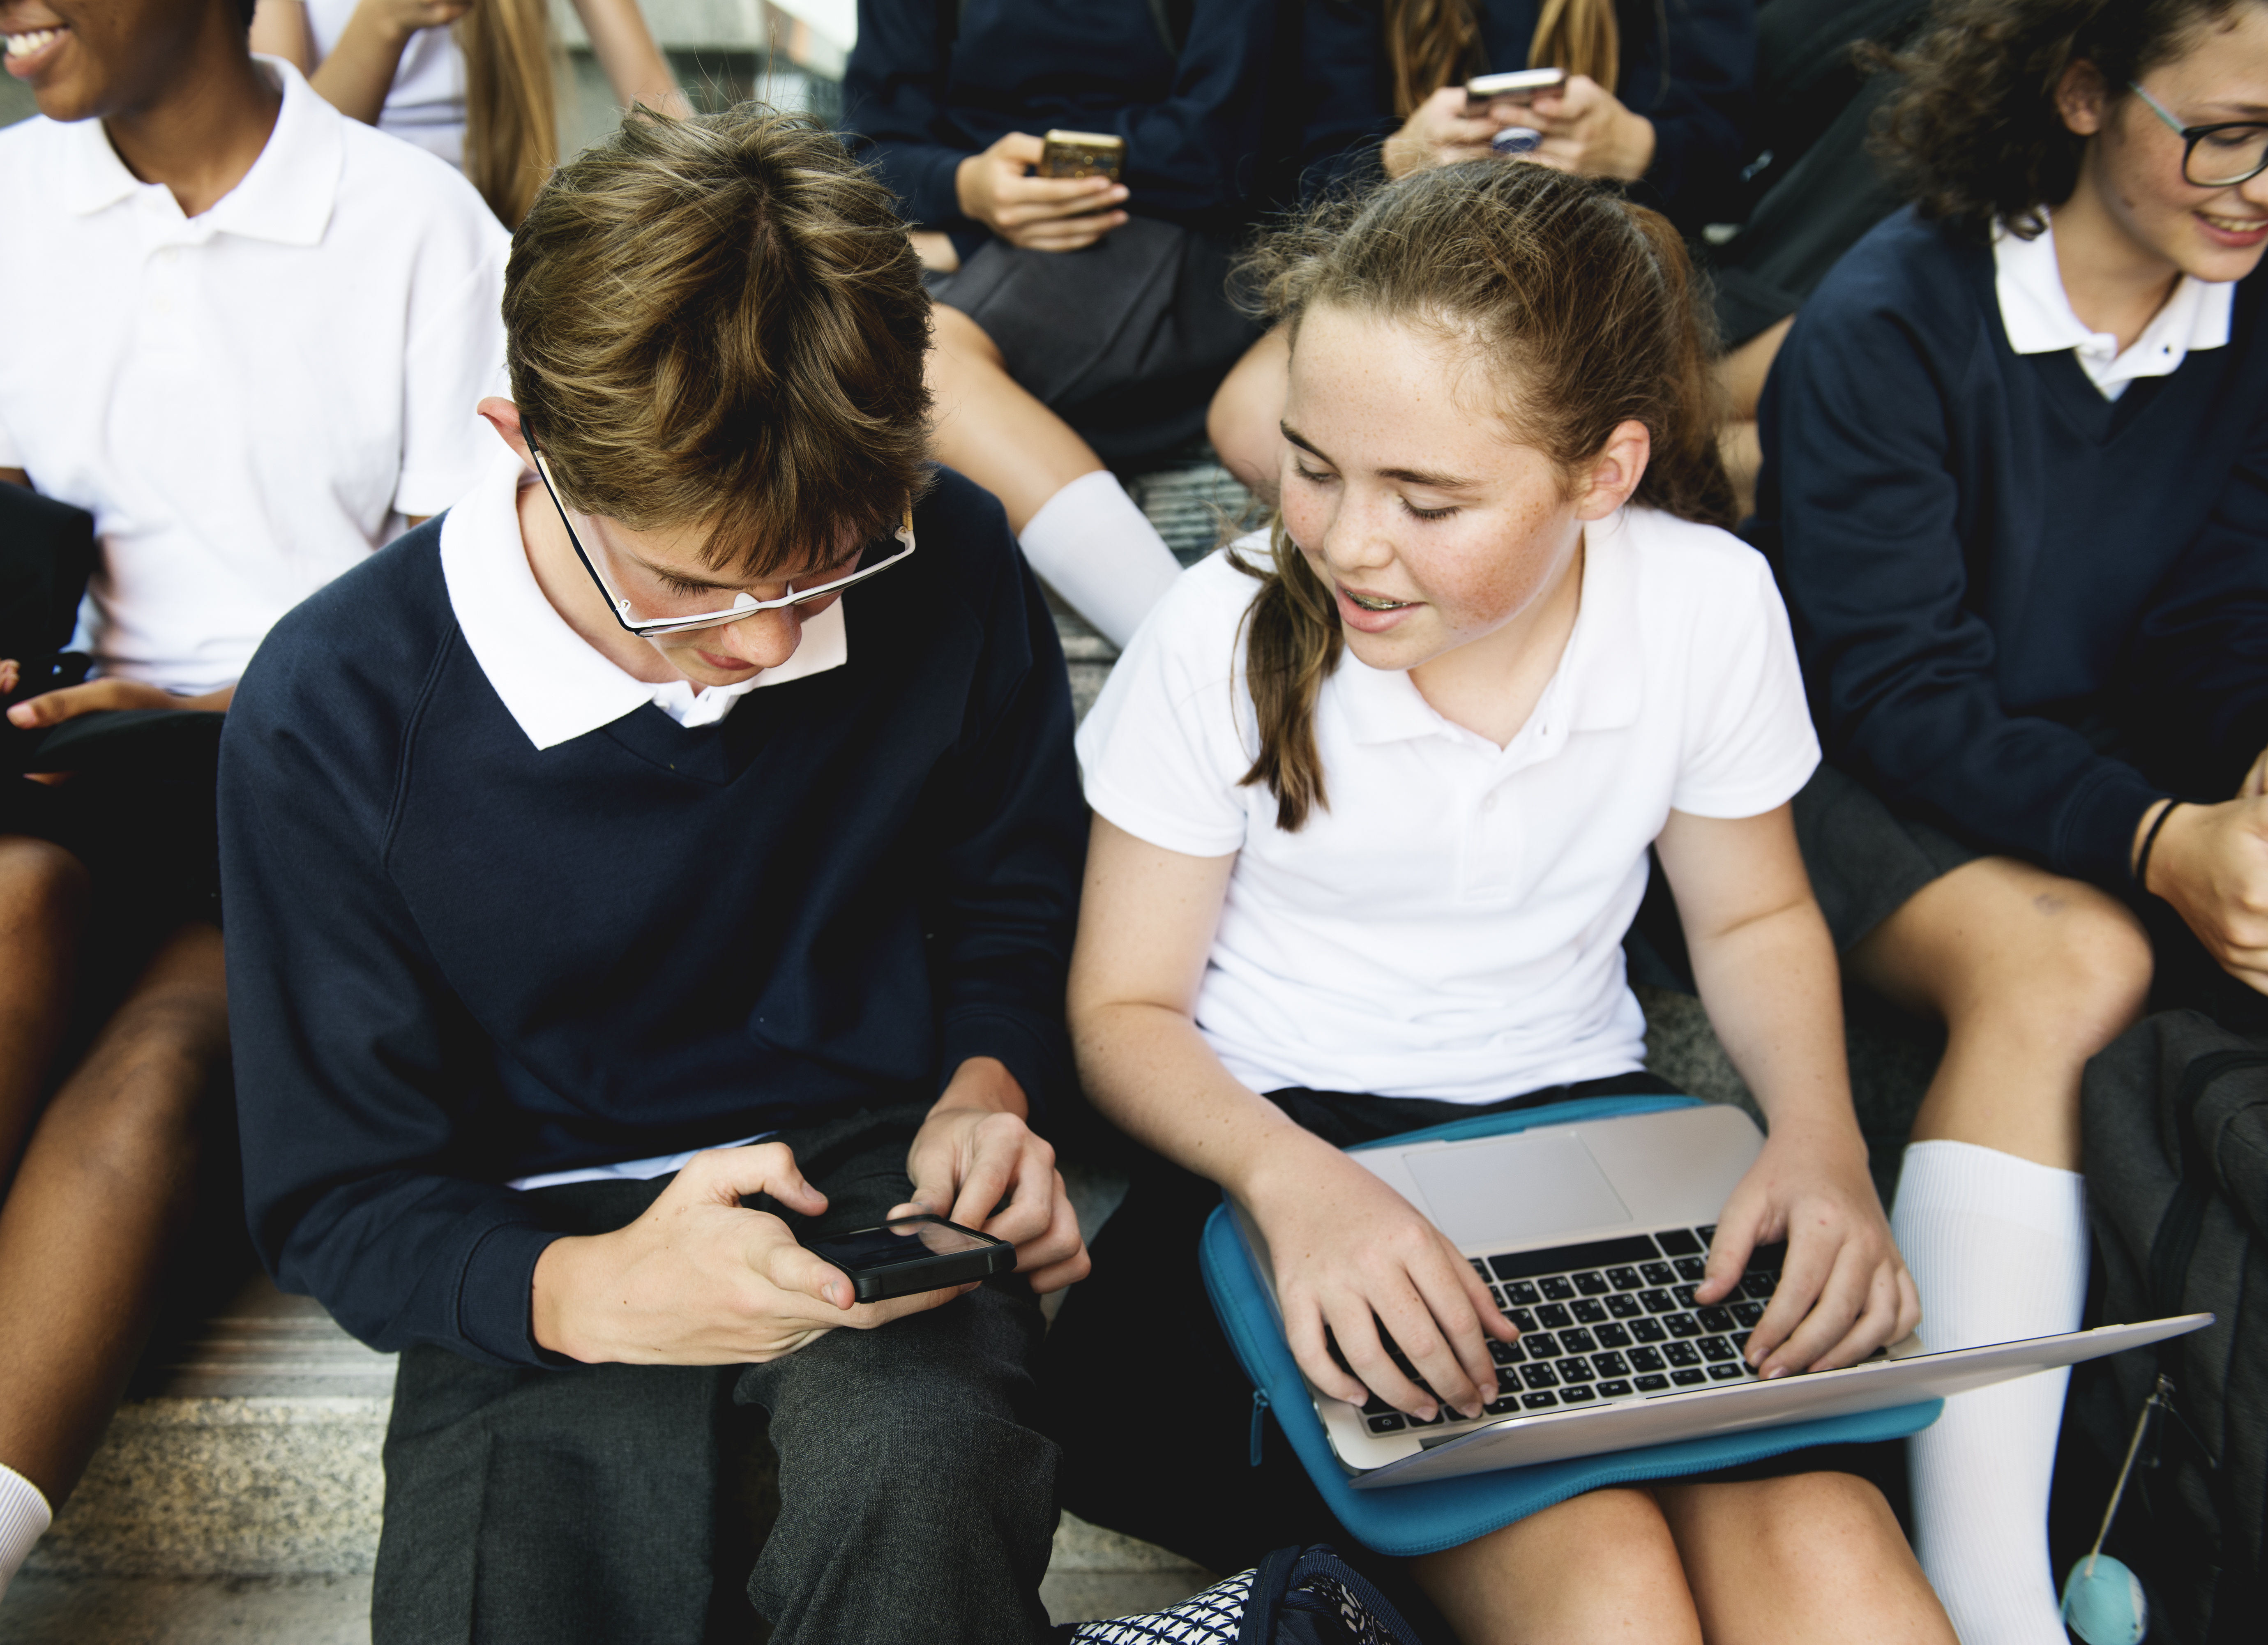 Wireless access in schools: what are the advantages?